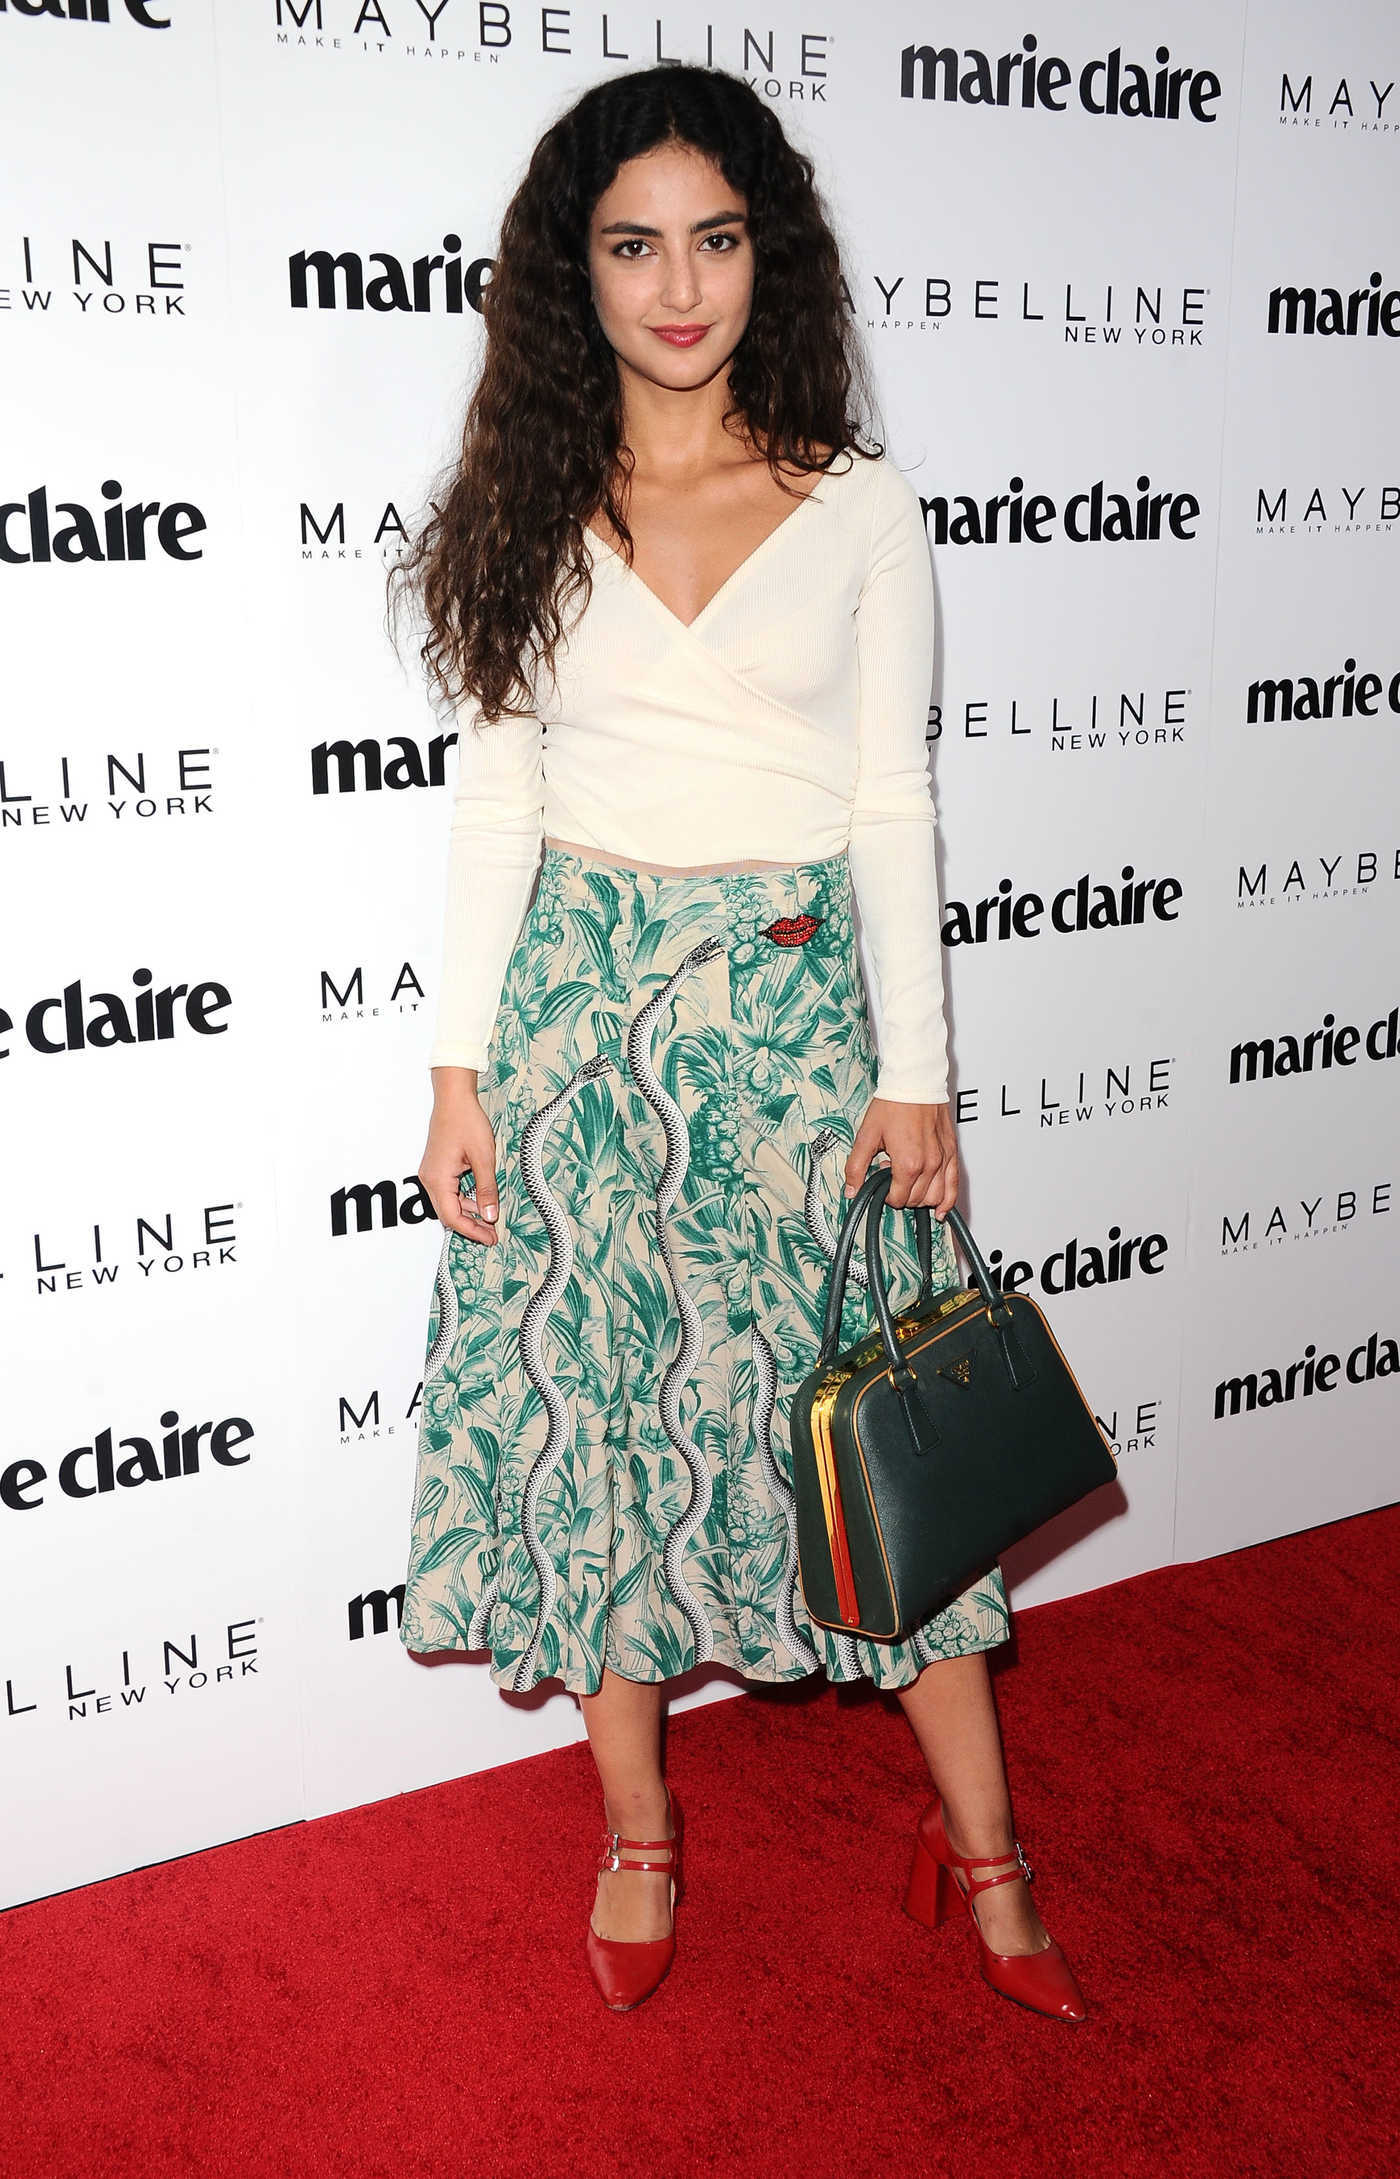 Medalion Rahimi At The Marie Claire Celebrates Fresh Faces Event In Los Angeles 04 21 2017 Celebrity Wiki Onceleb Wiki